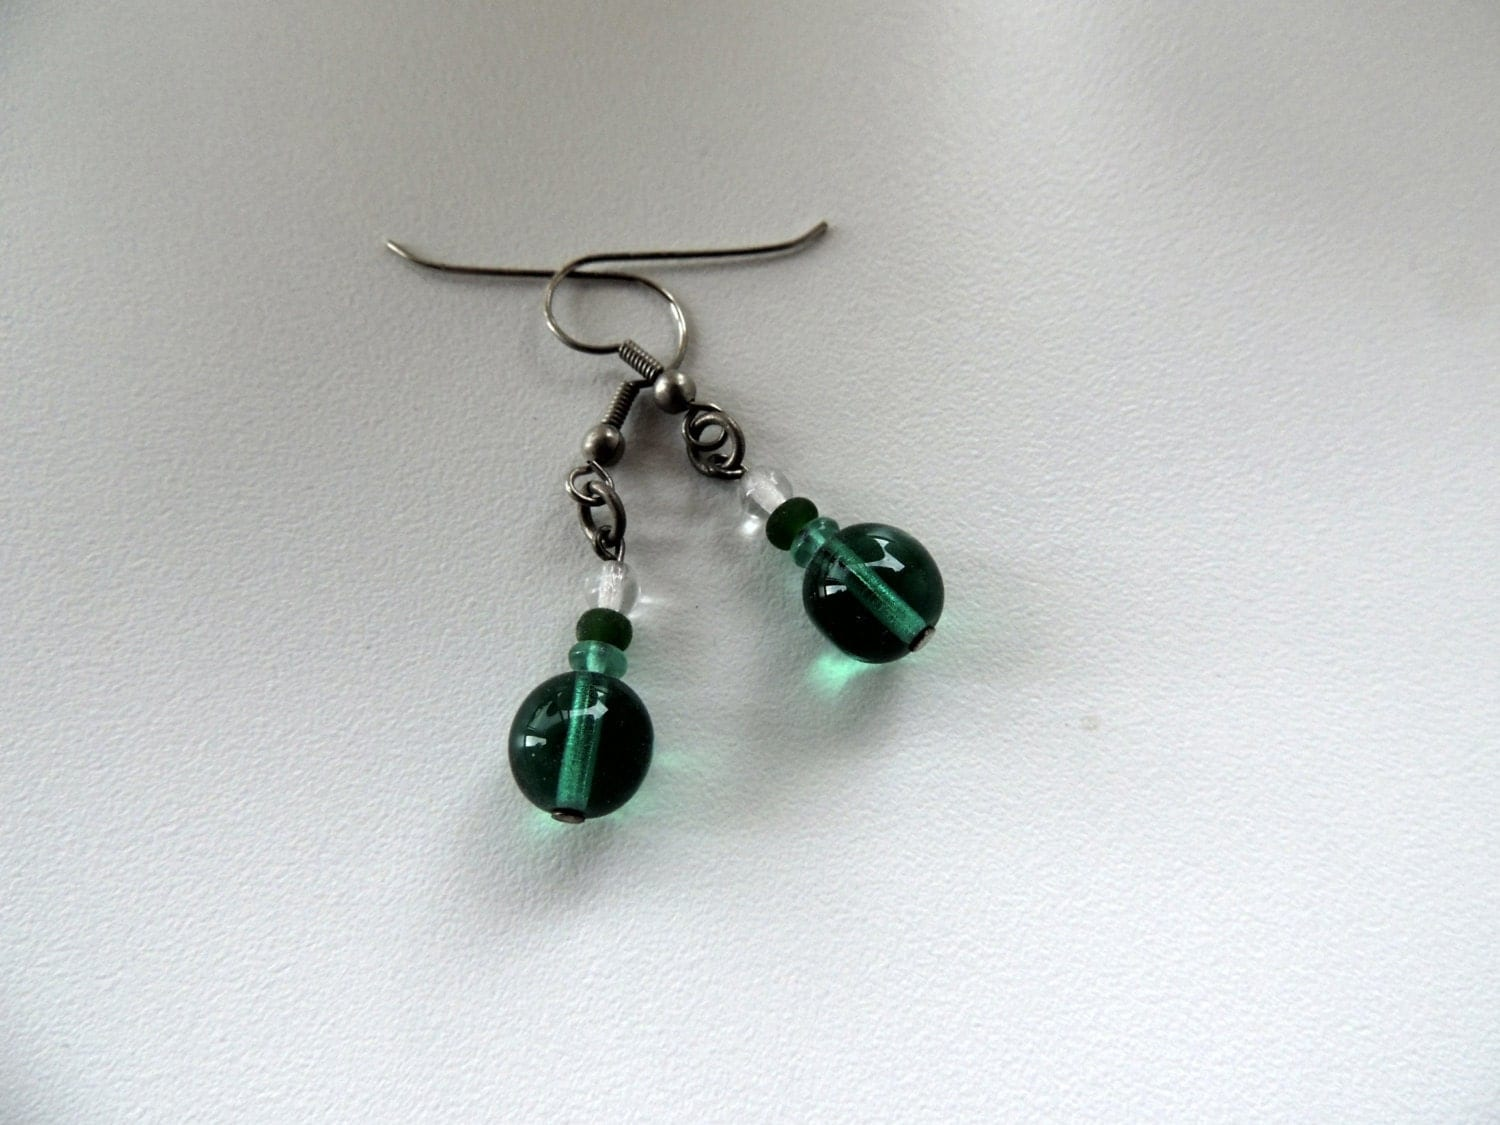 glass beads earrings,green beads,green earrings,green glass earrings,dangle earrings,gift for woman - Homeforglasslovers